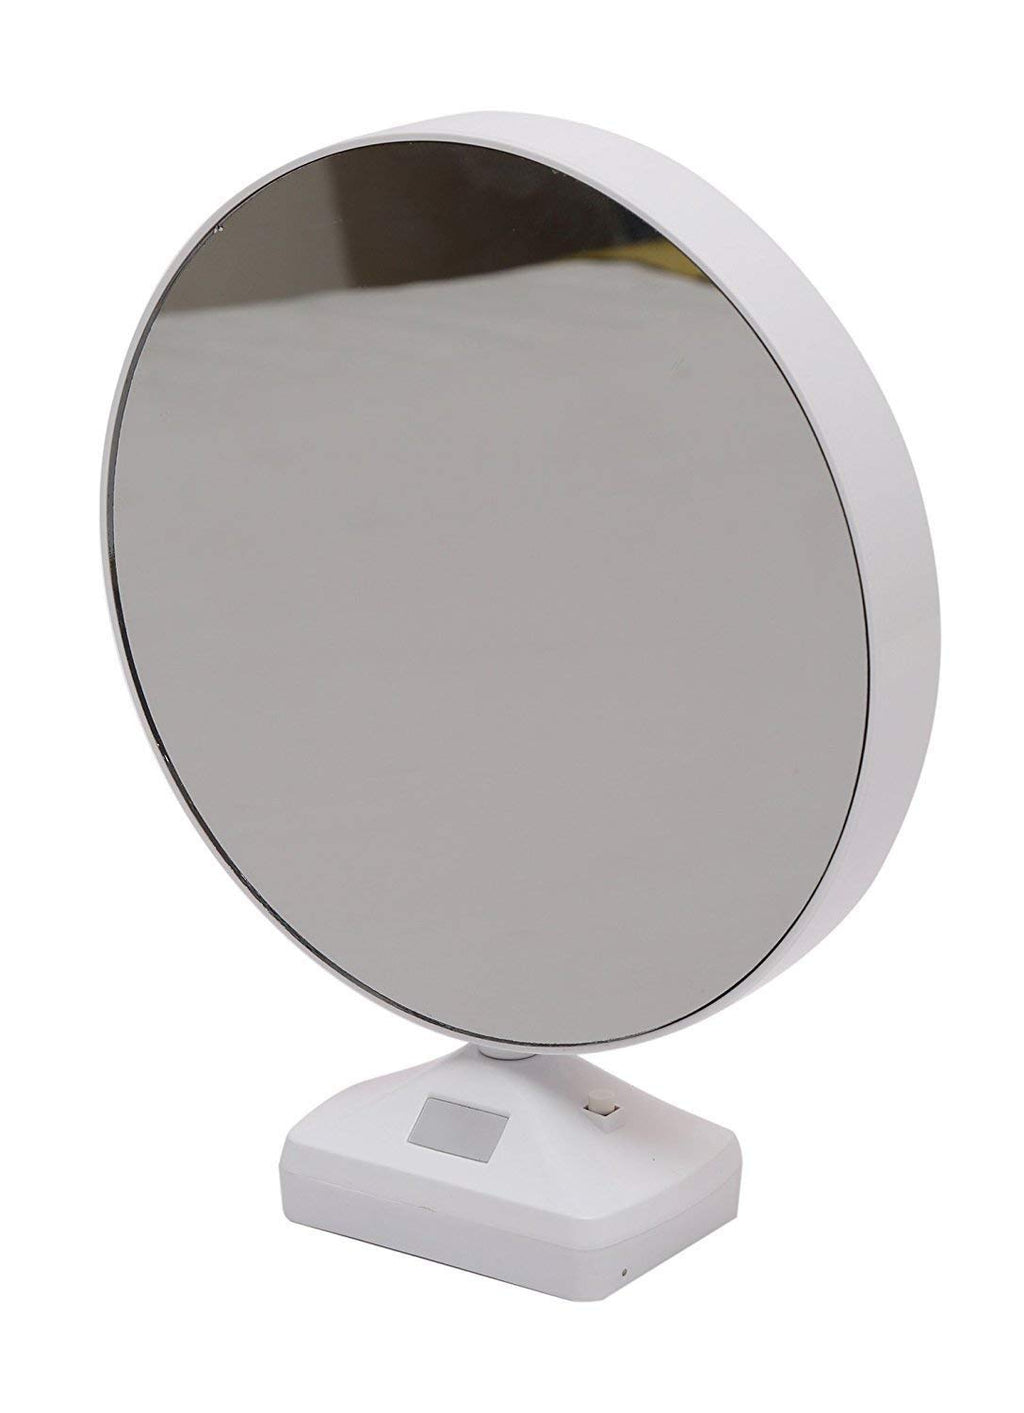 Magic Mirror and Glass Photo Frame LED Light Lamp